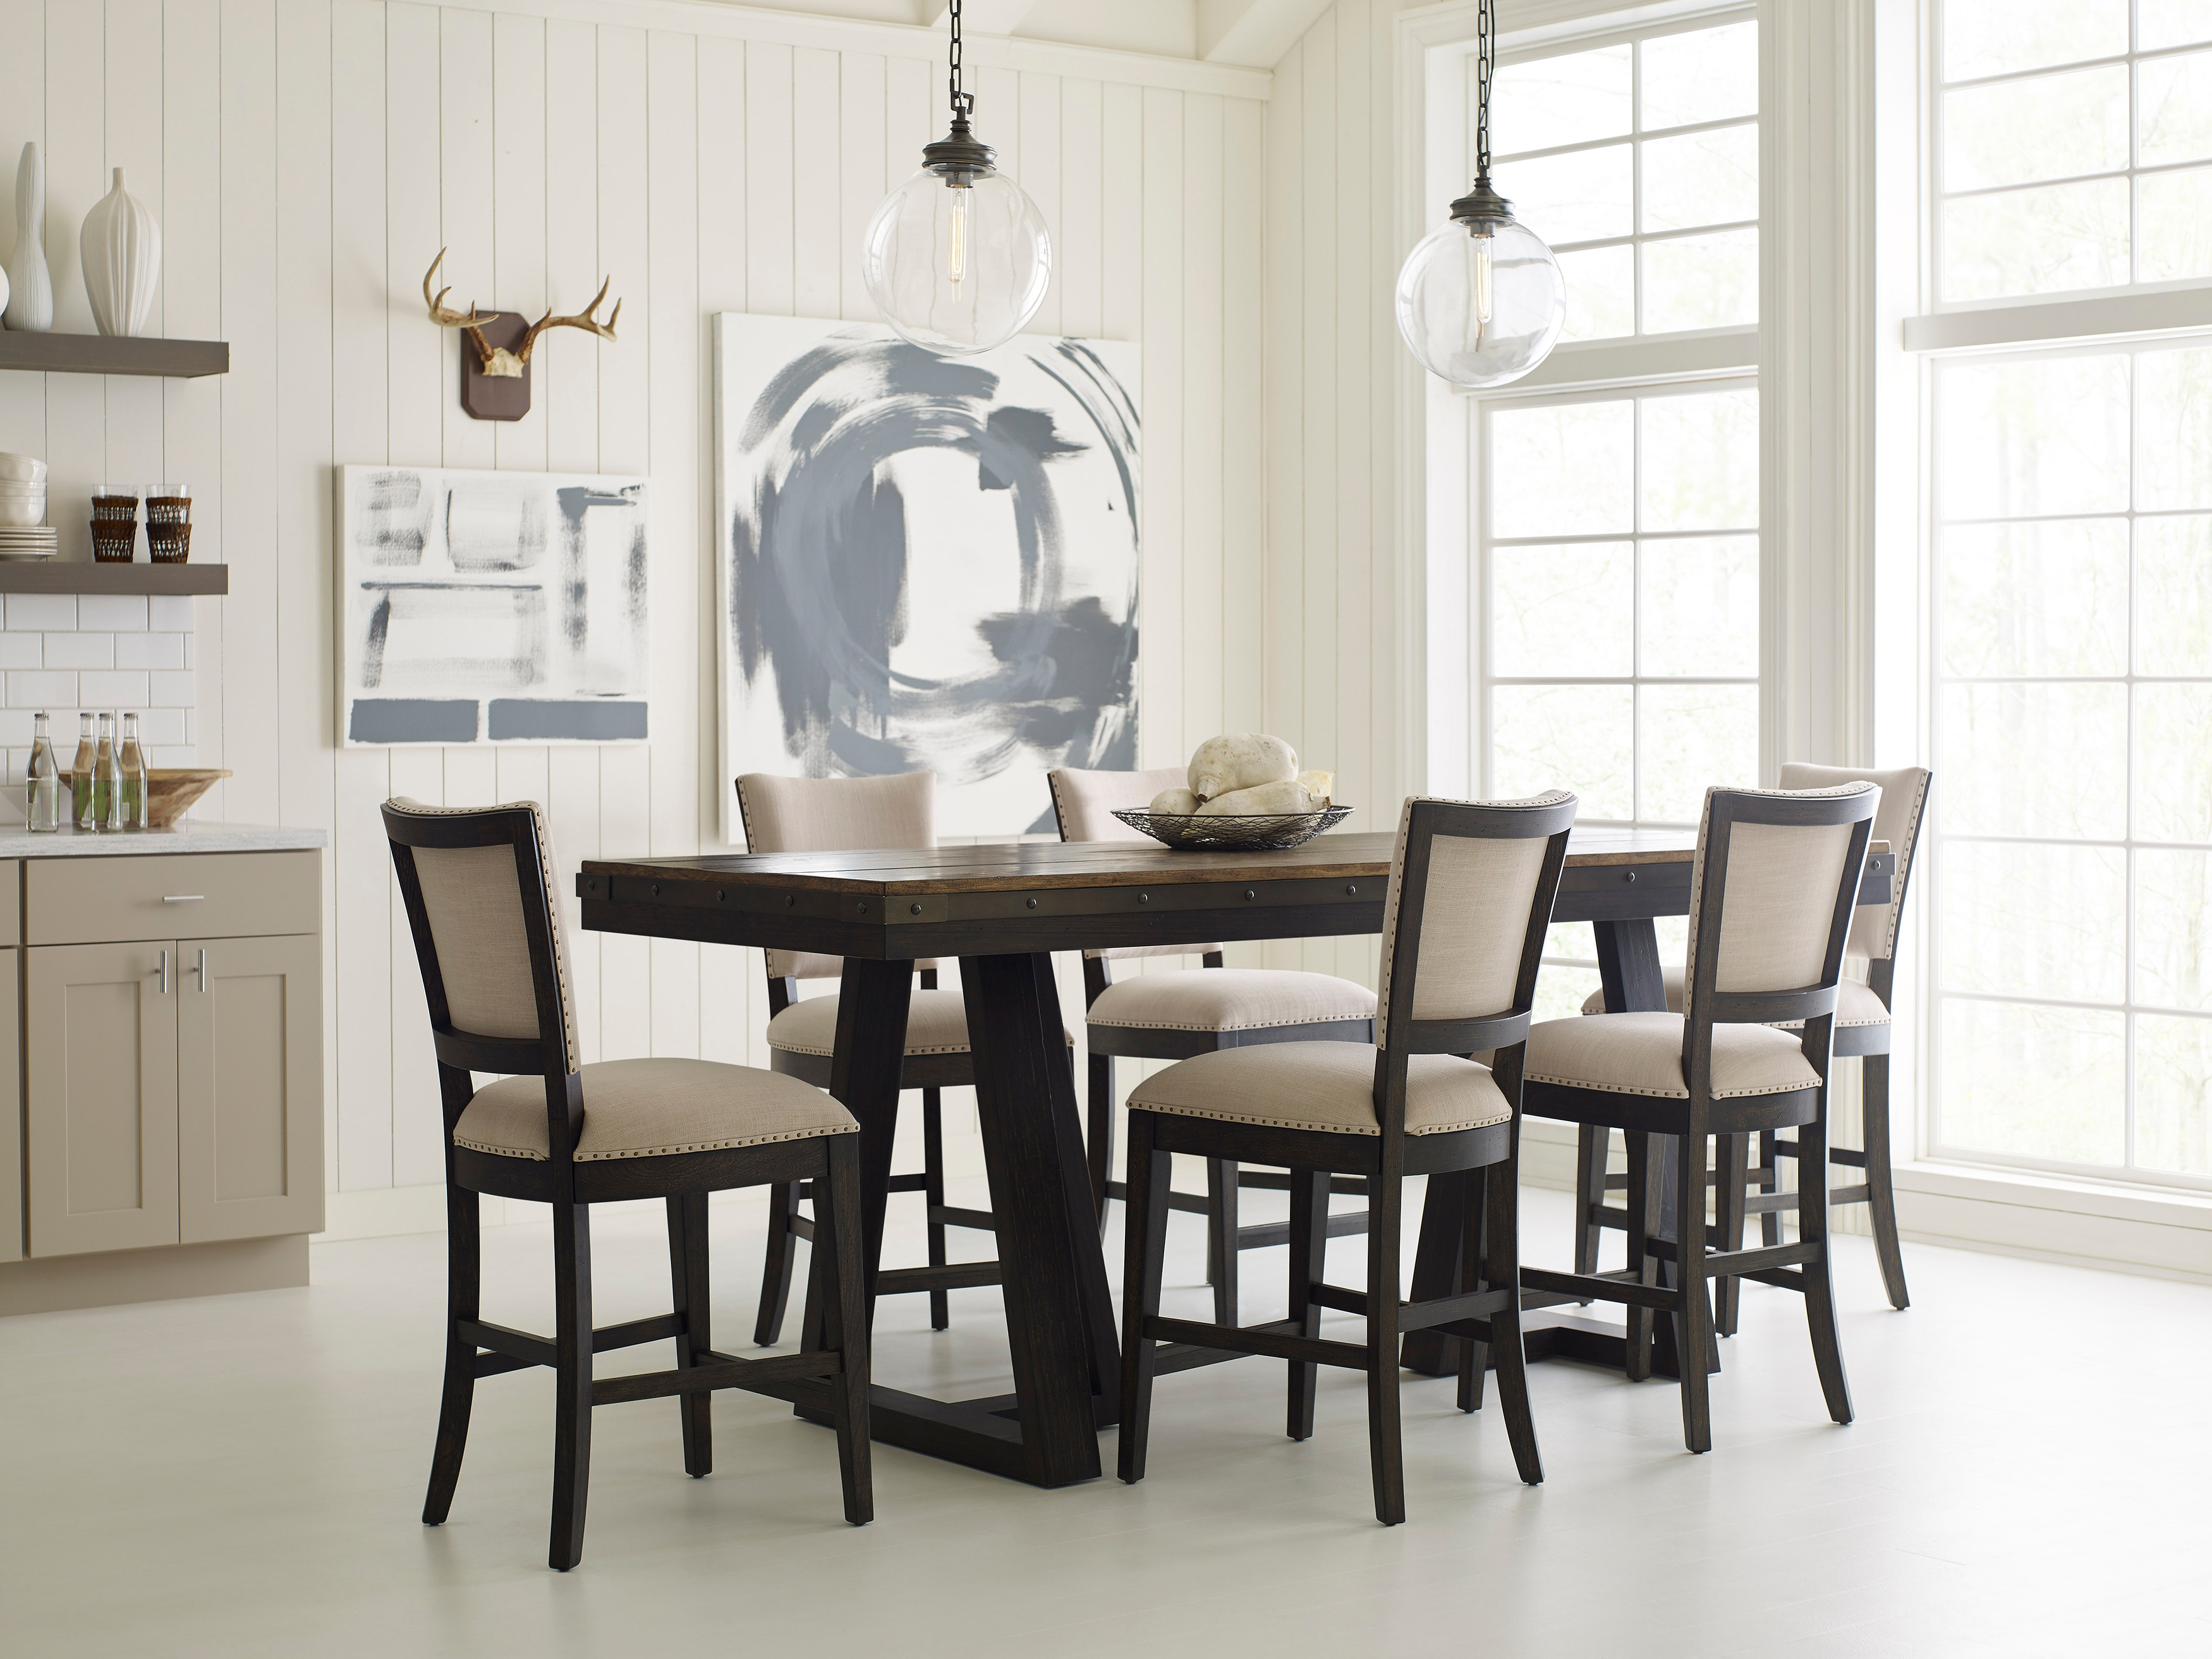 Plank Road Kimler Counter Height Dining Table   CHARCOAL KT:78543